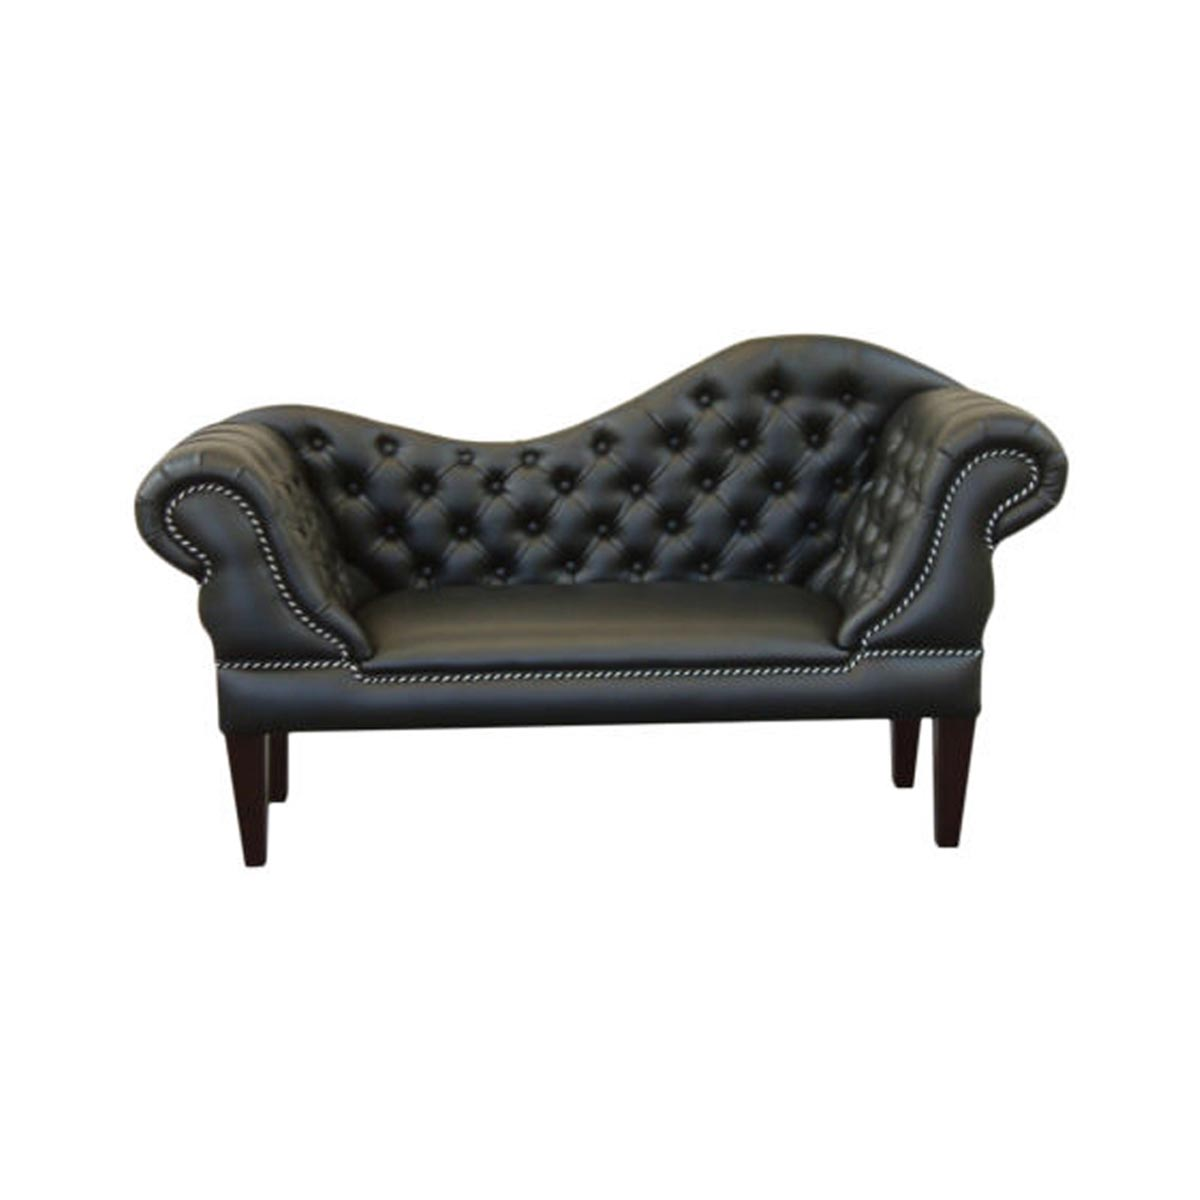 leather and wood sofa. Leather And Wood Sofa